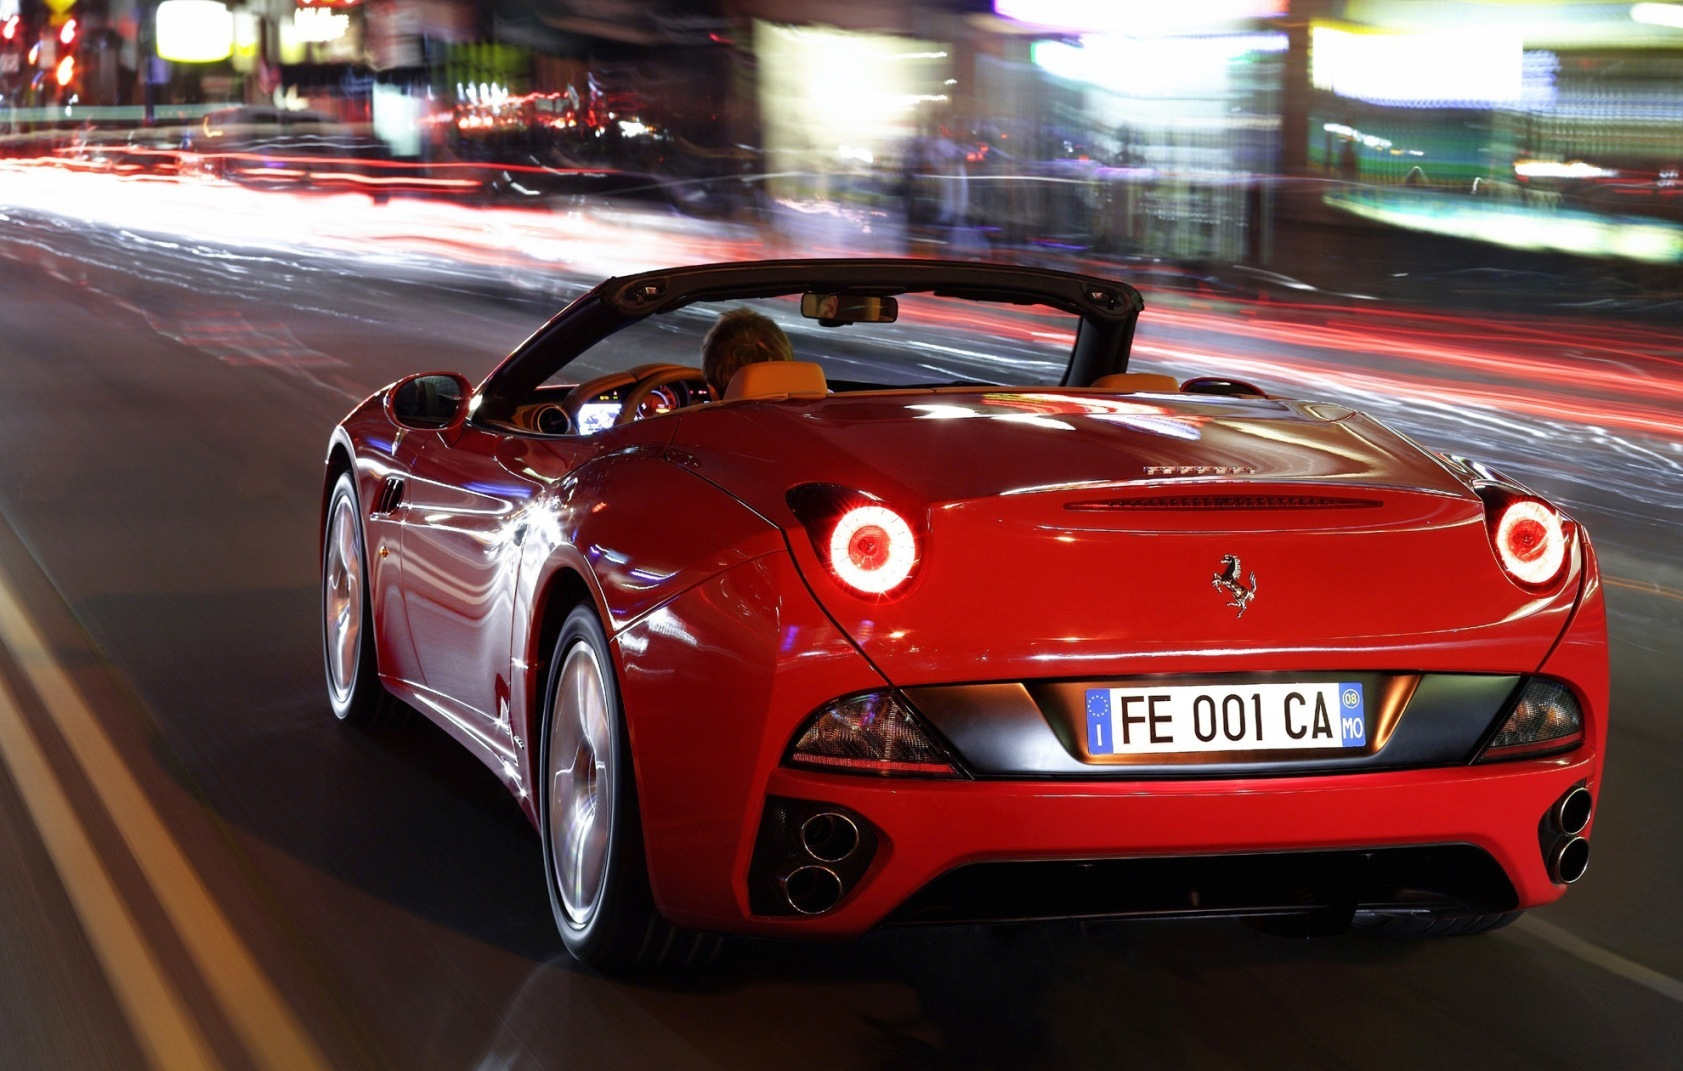 Next-Gen Ferrari California Set to Deliver 552 hp - GTspirit